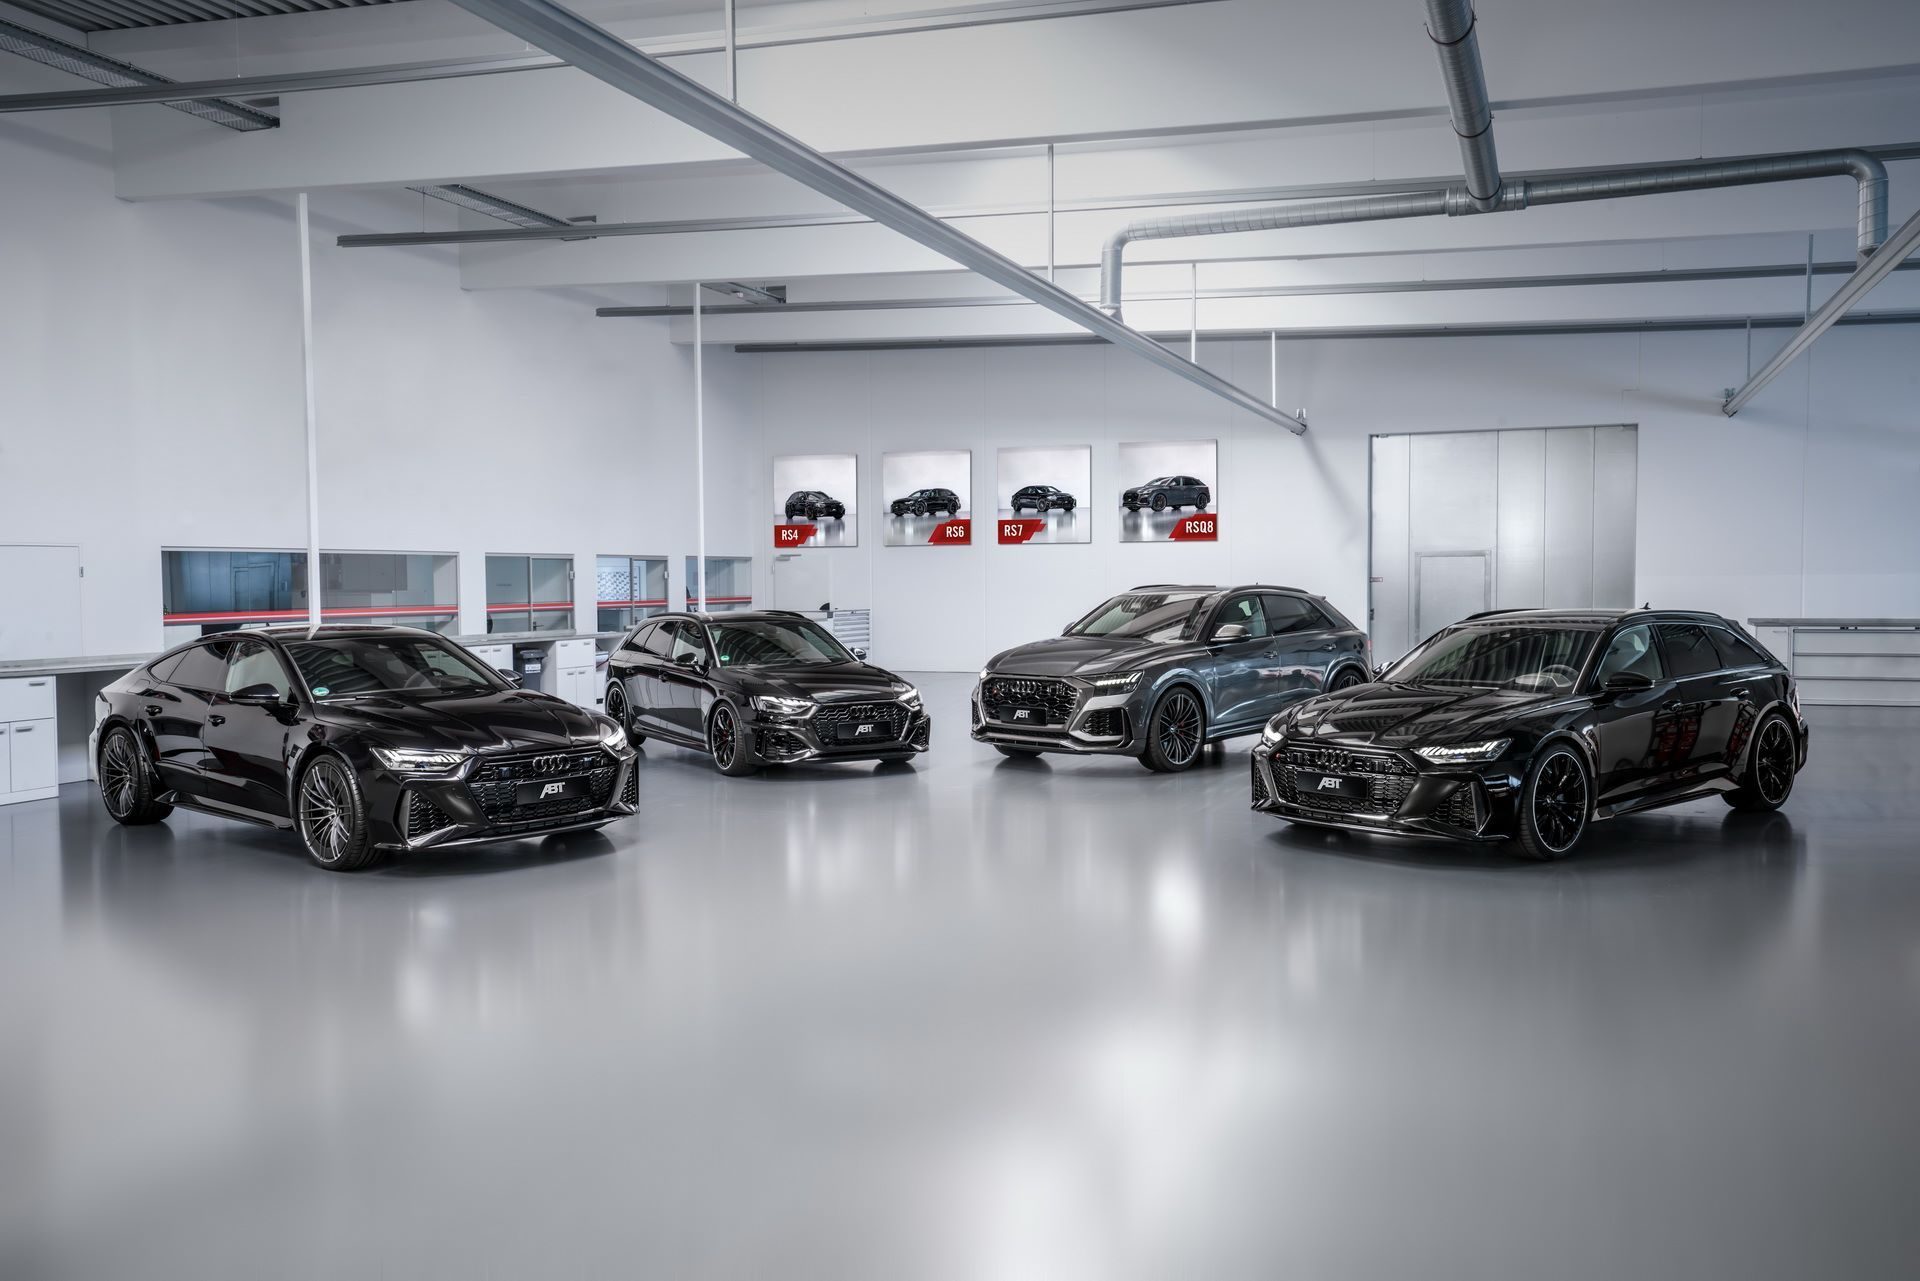 2020-audi-rs4-rs6-rs7-rs-q8-abt-tuning